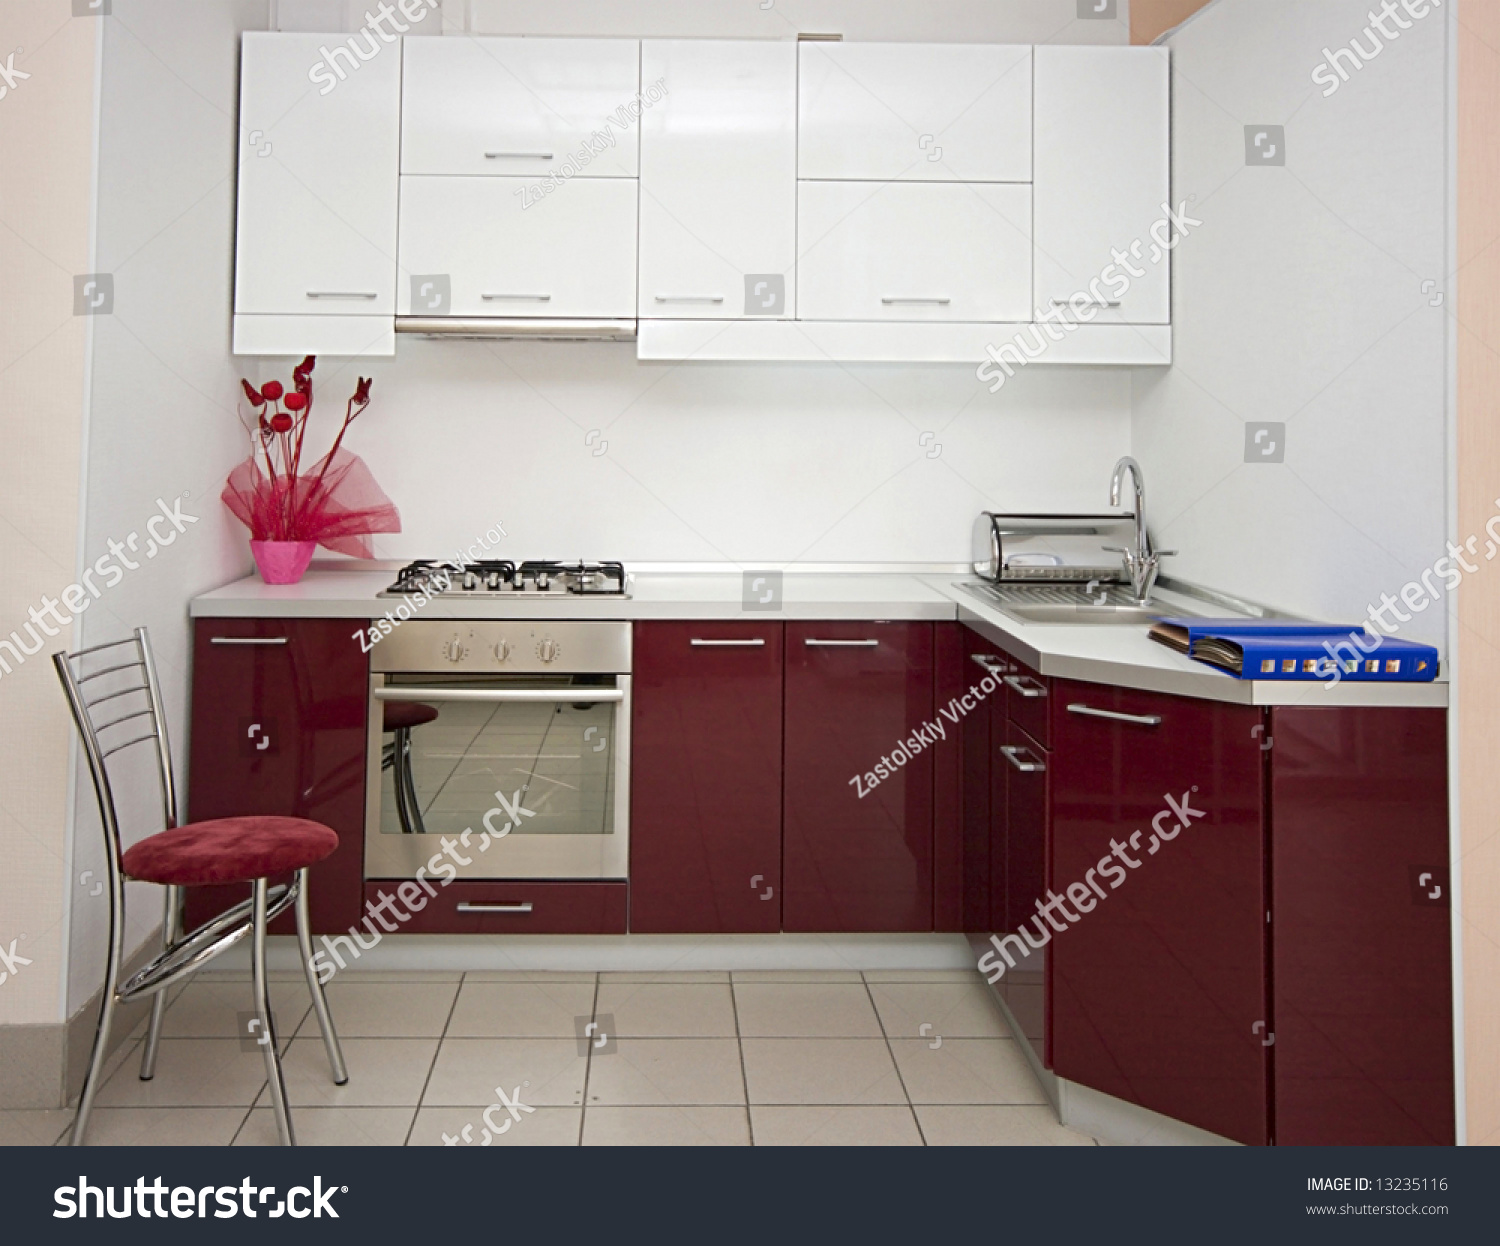 Modern Kitchen Interior Details Image Stock Photo 13235116 Shutterstock